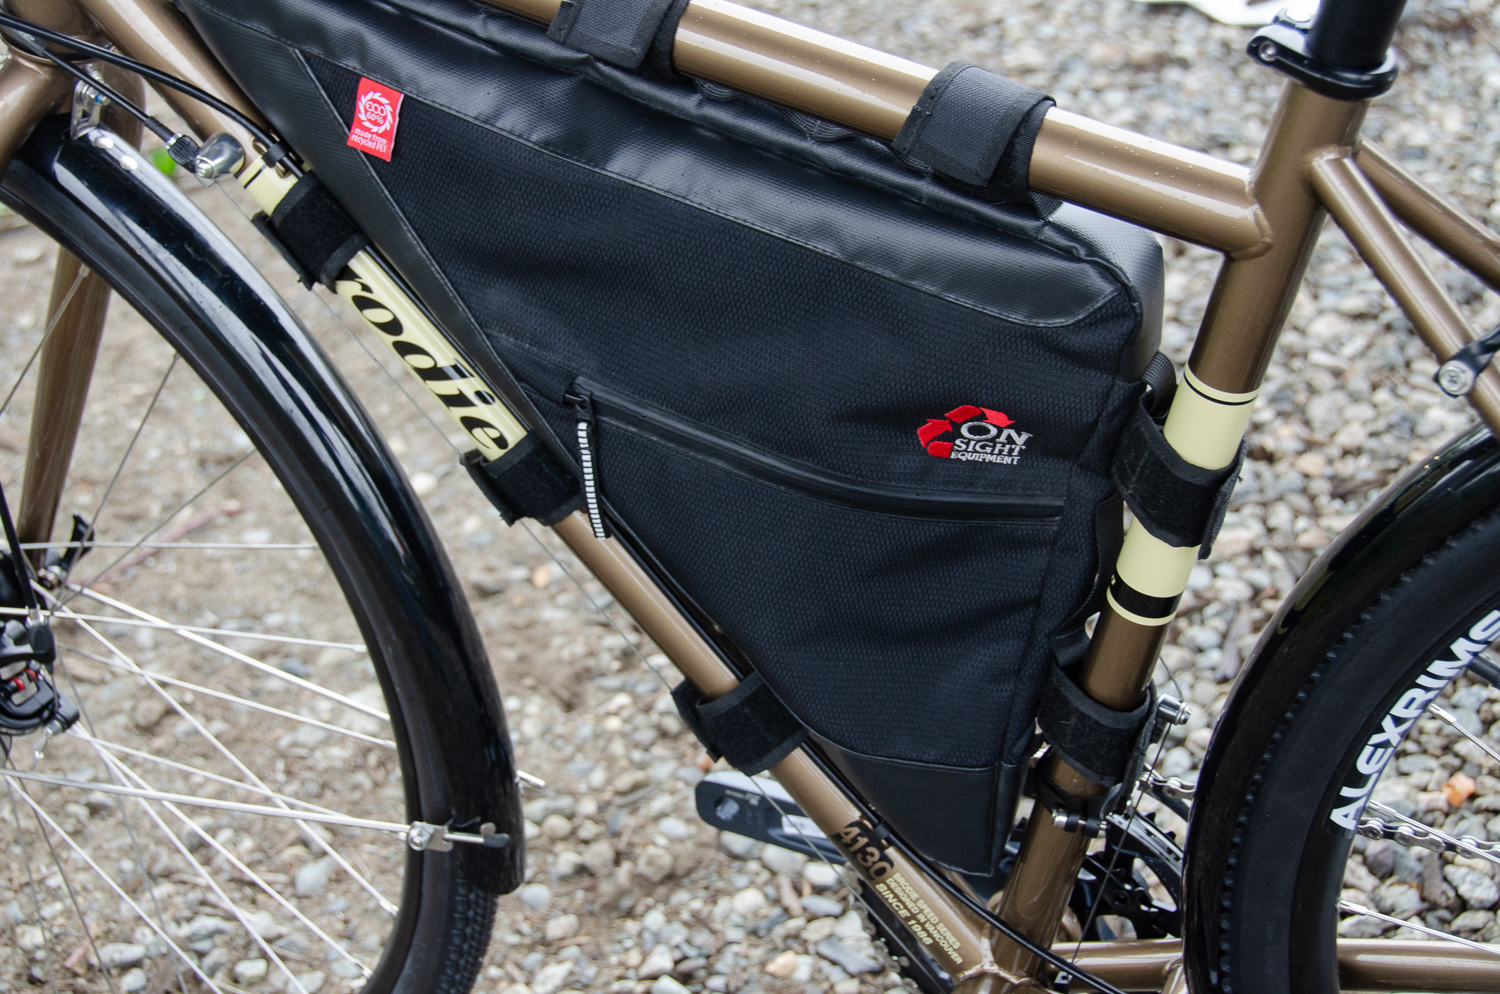 Elan with ONSight frame bag.jpg